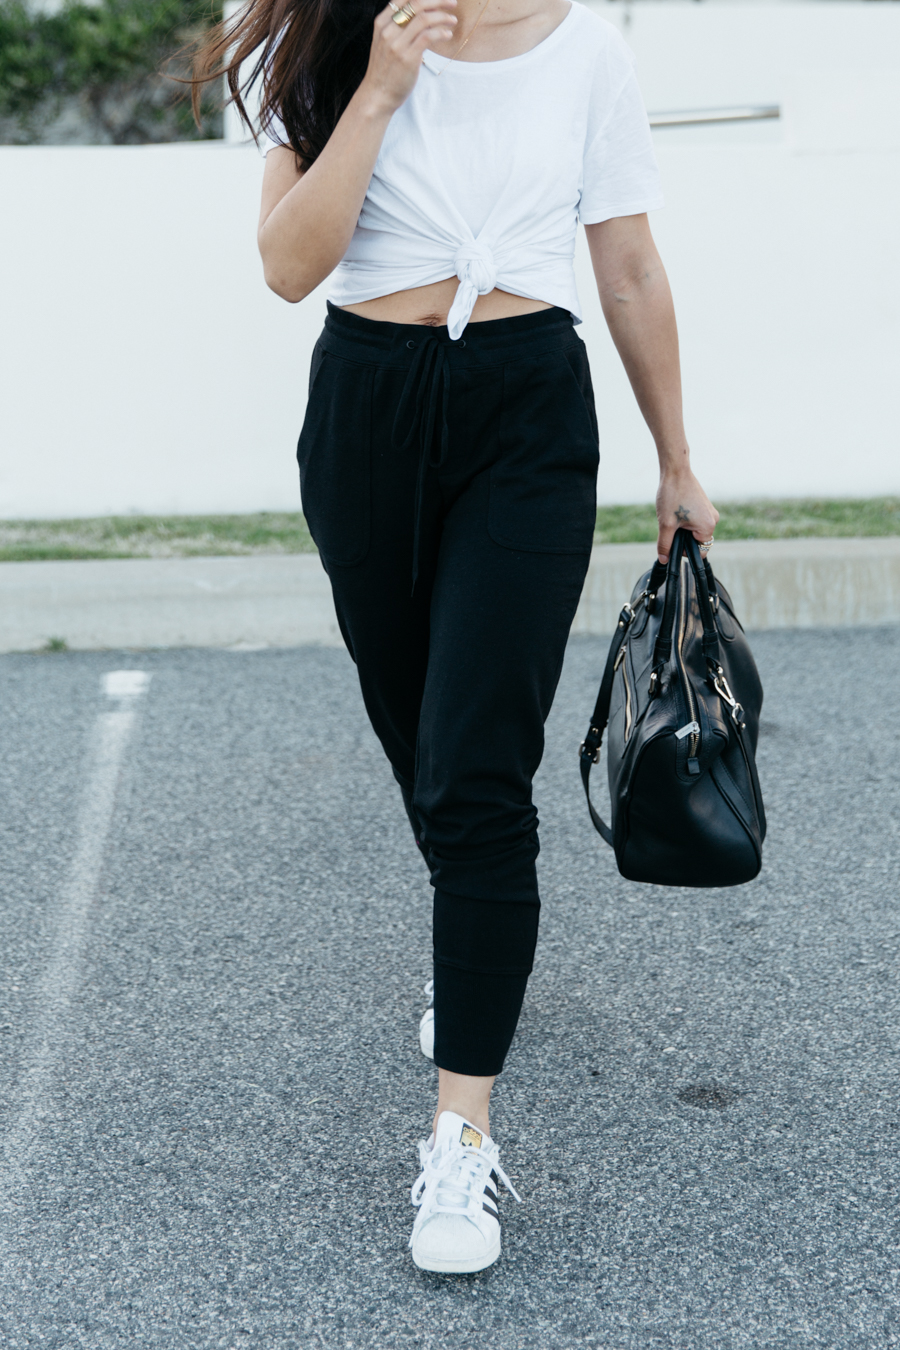 Casual sweat pants outfit with white knotted t-shirt & black leather bag & sneakers.